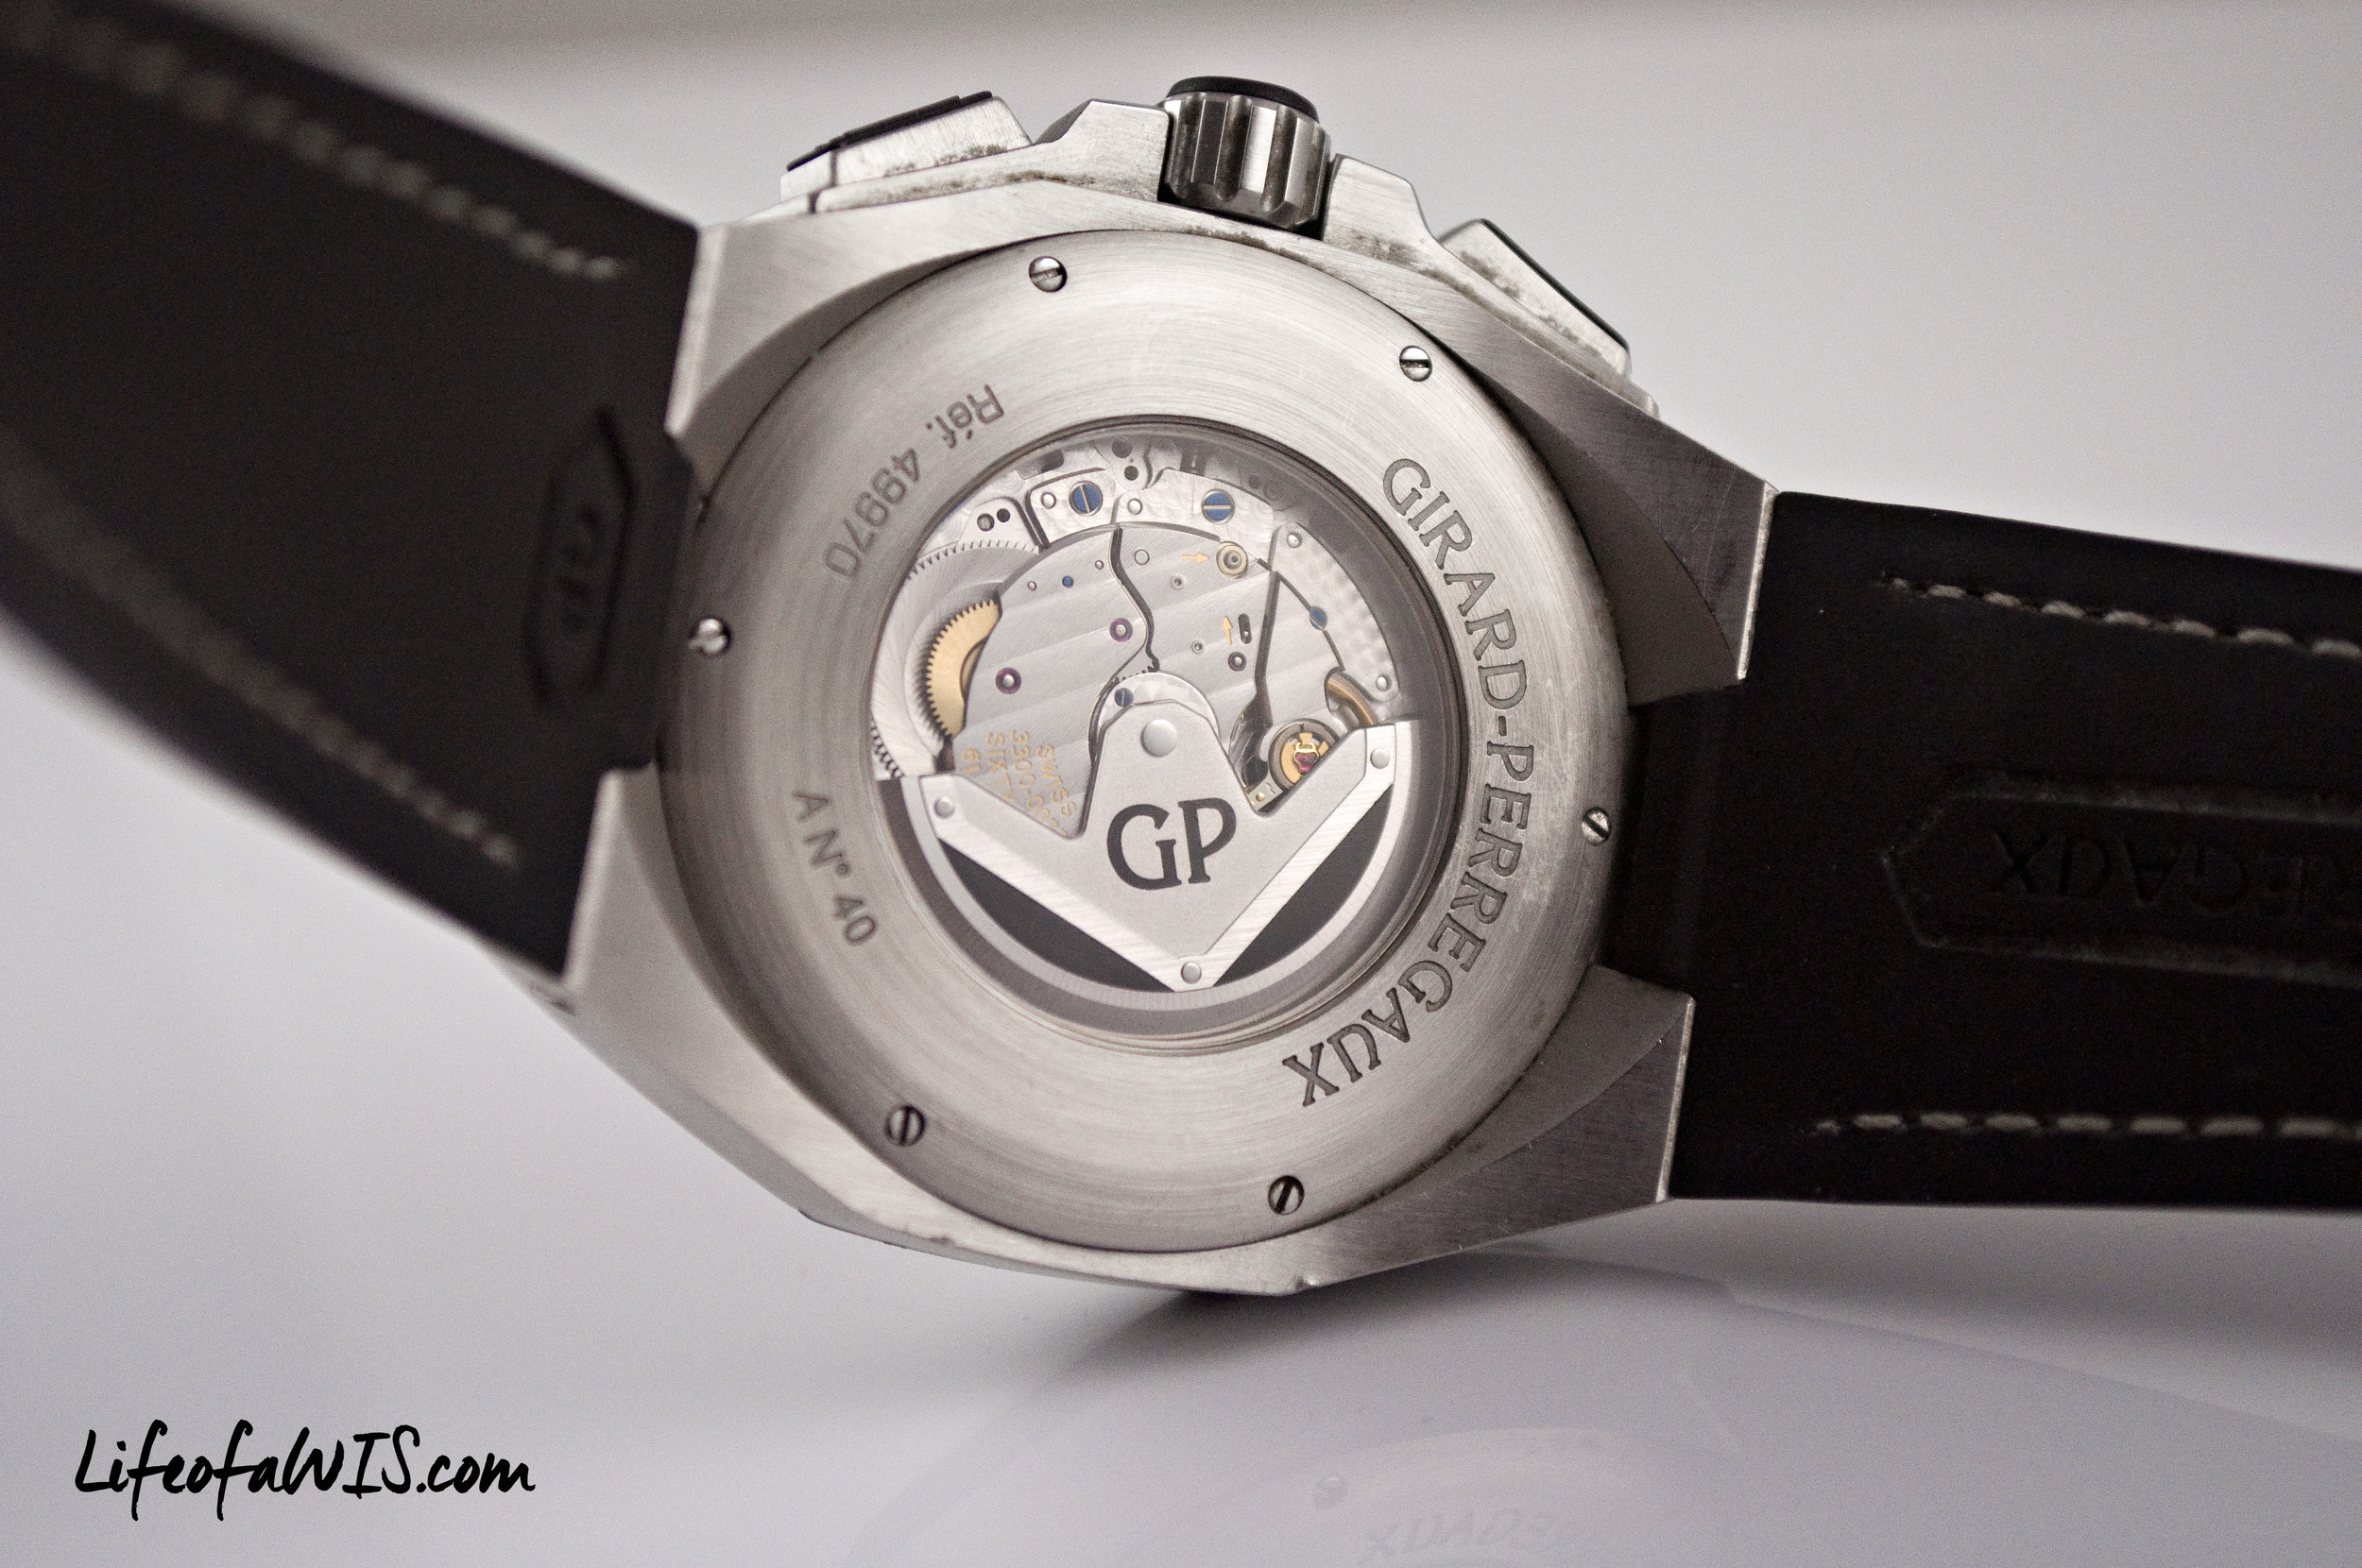 The beautiful GP03300-0073  manufacture  movement.